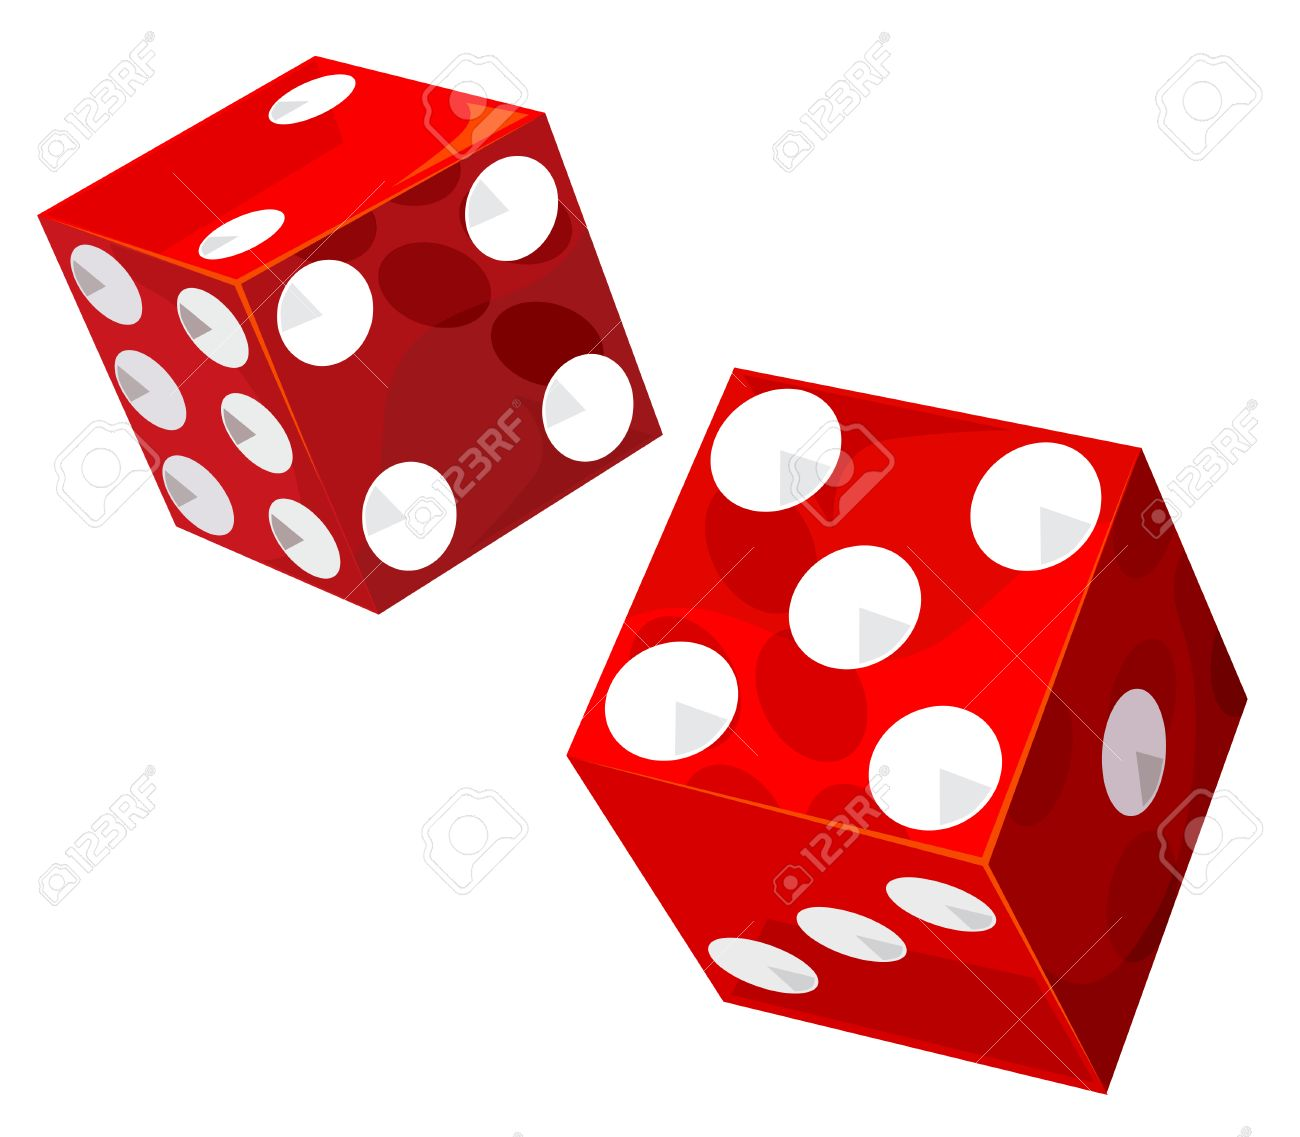 Casino dice. Vector without gradients and transparencies..